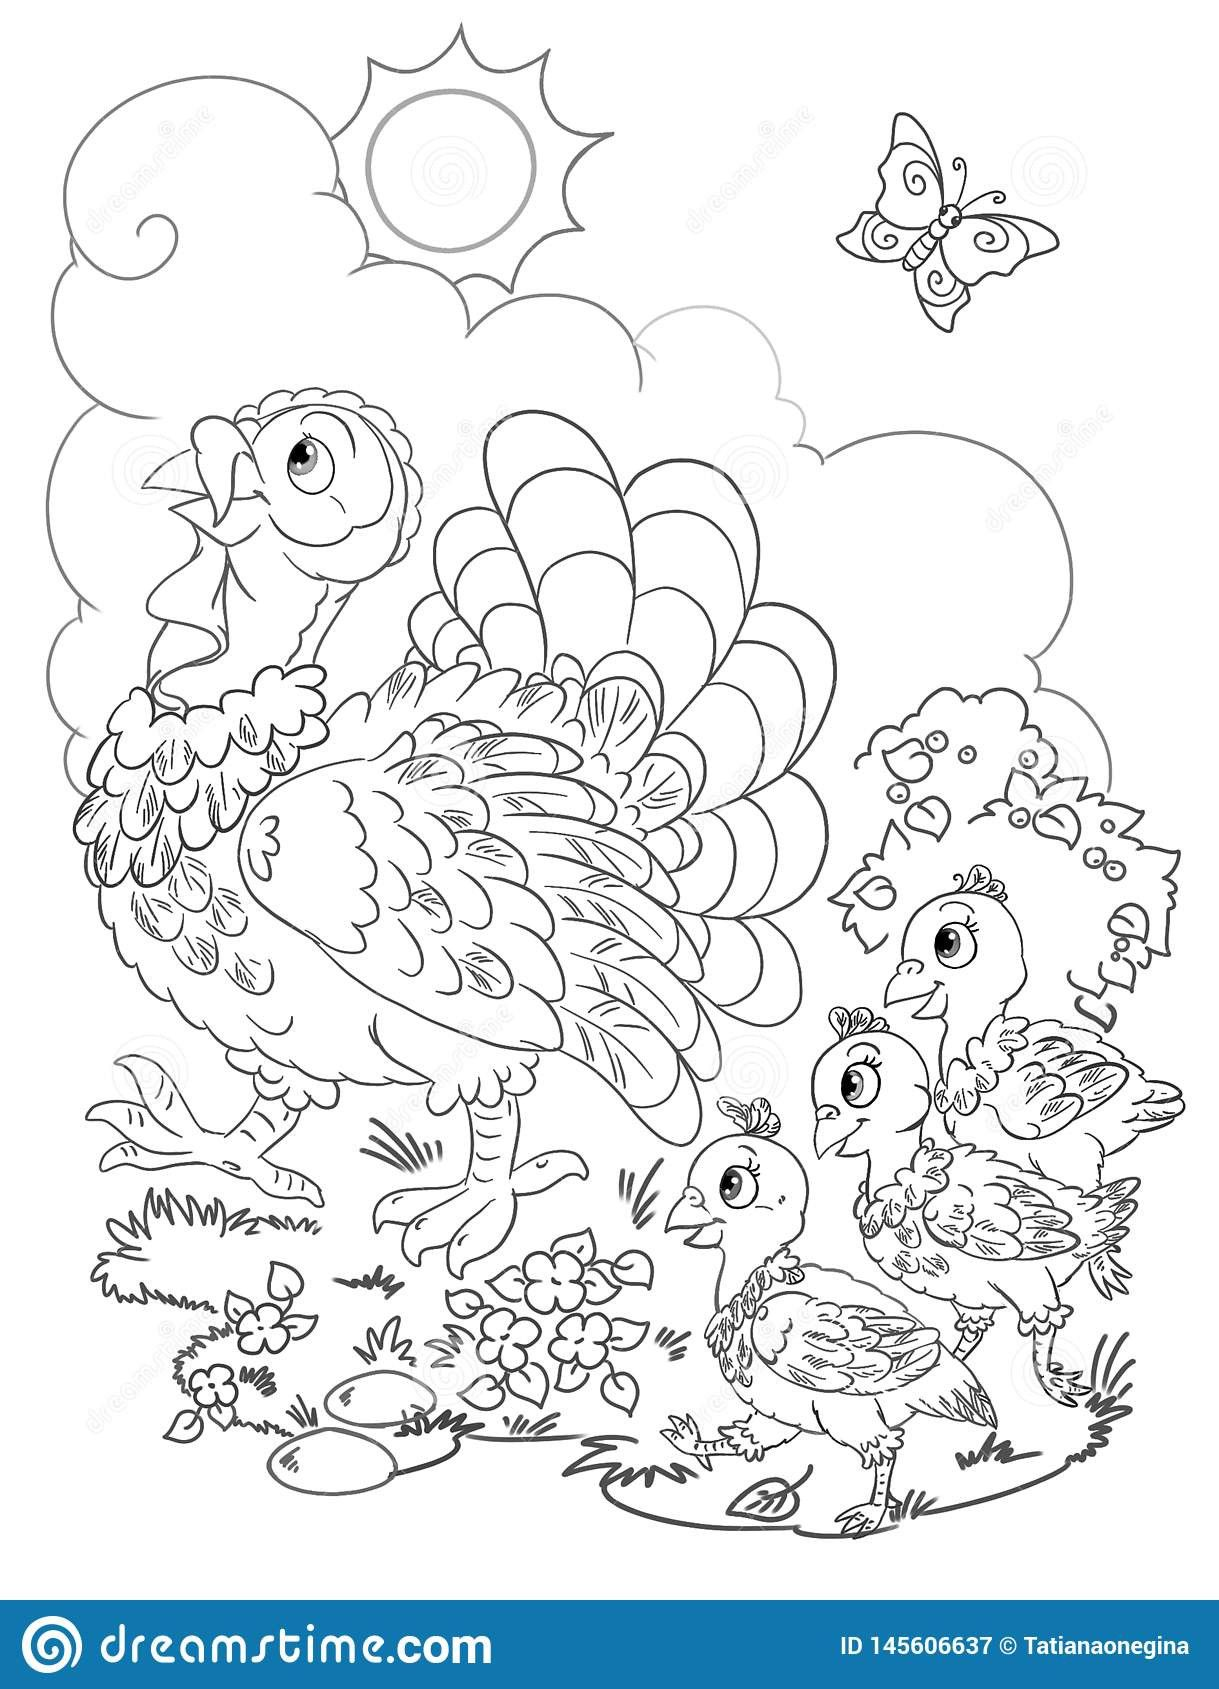 Turkey Outline Coloring Page Youngandtae Com Turkey Coloring Pages Thanksgiving Coloring Pages Coloring Pages